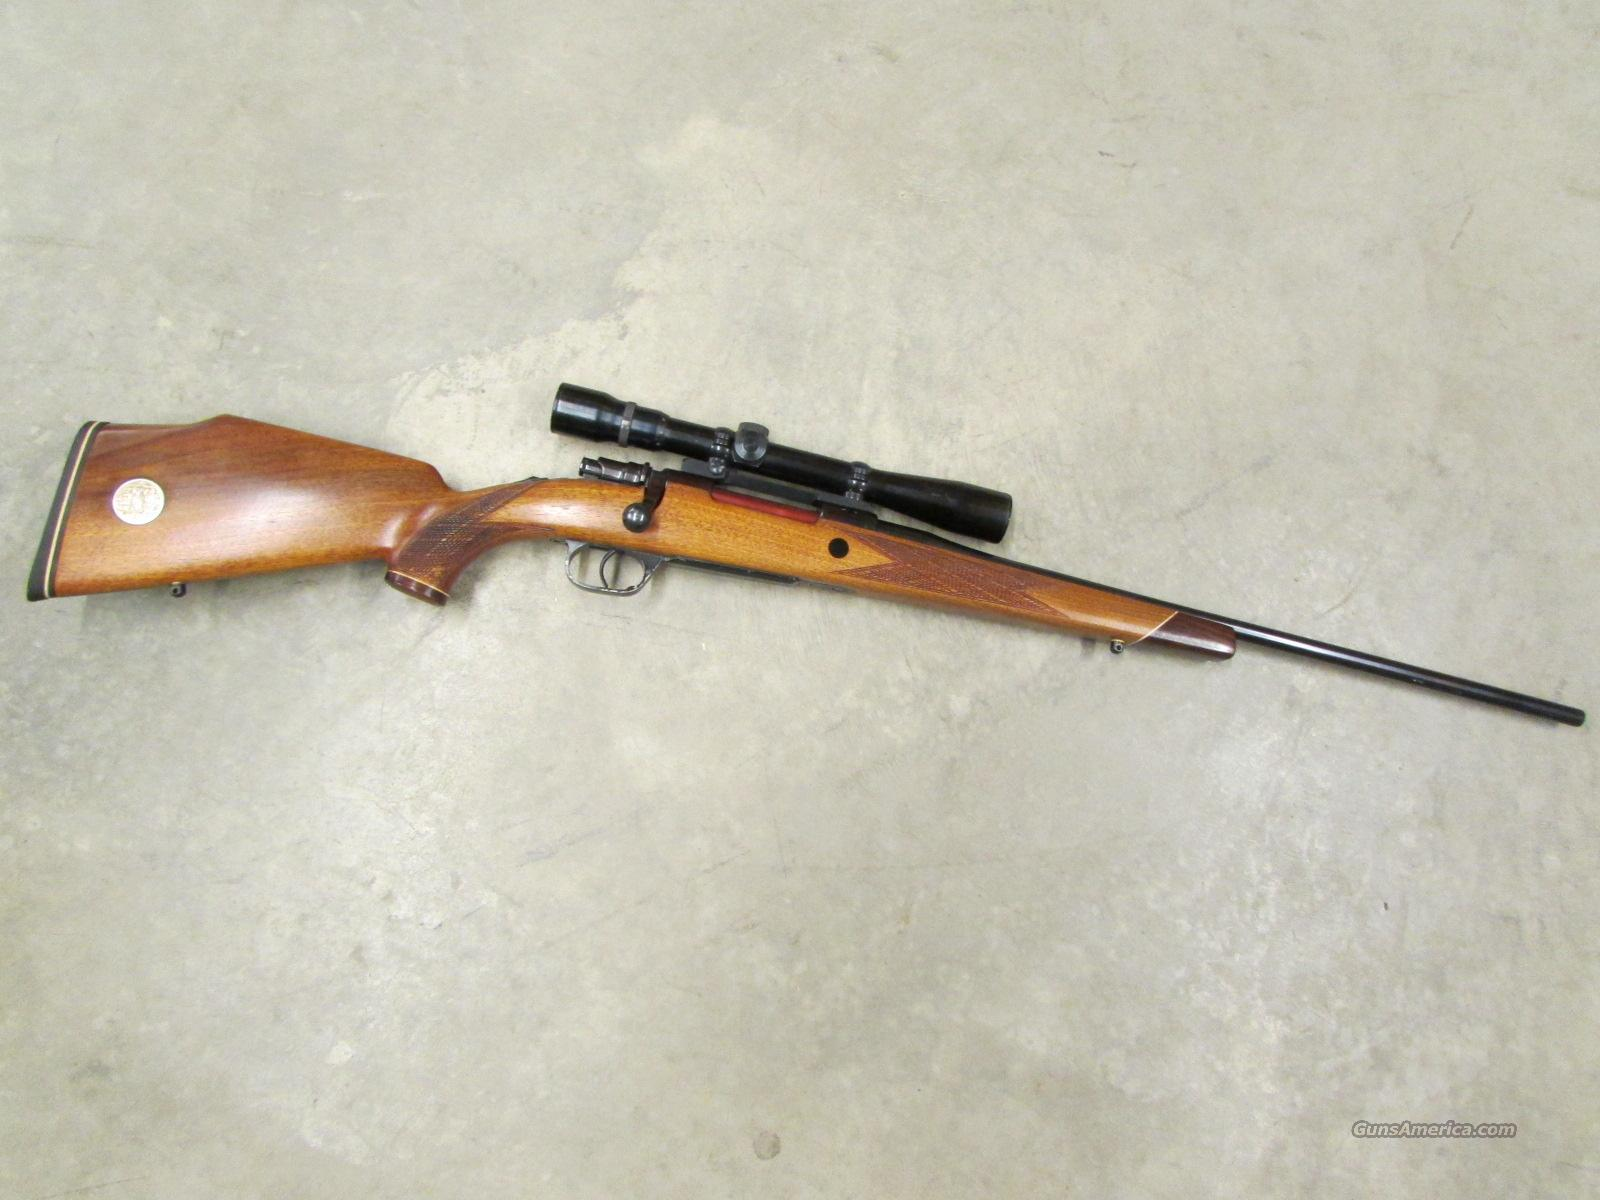 Vintage Parker-Ballard Austrian Mauser Action .30-06 Walnut Stock  Guns > Rifles > Parker-Hale Rifles